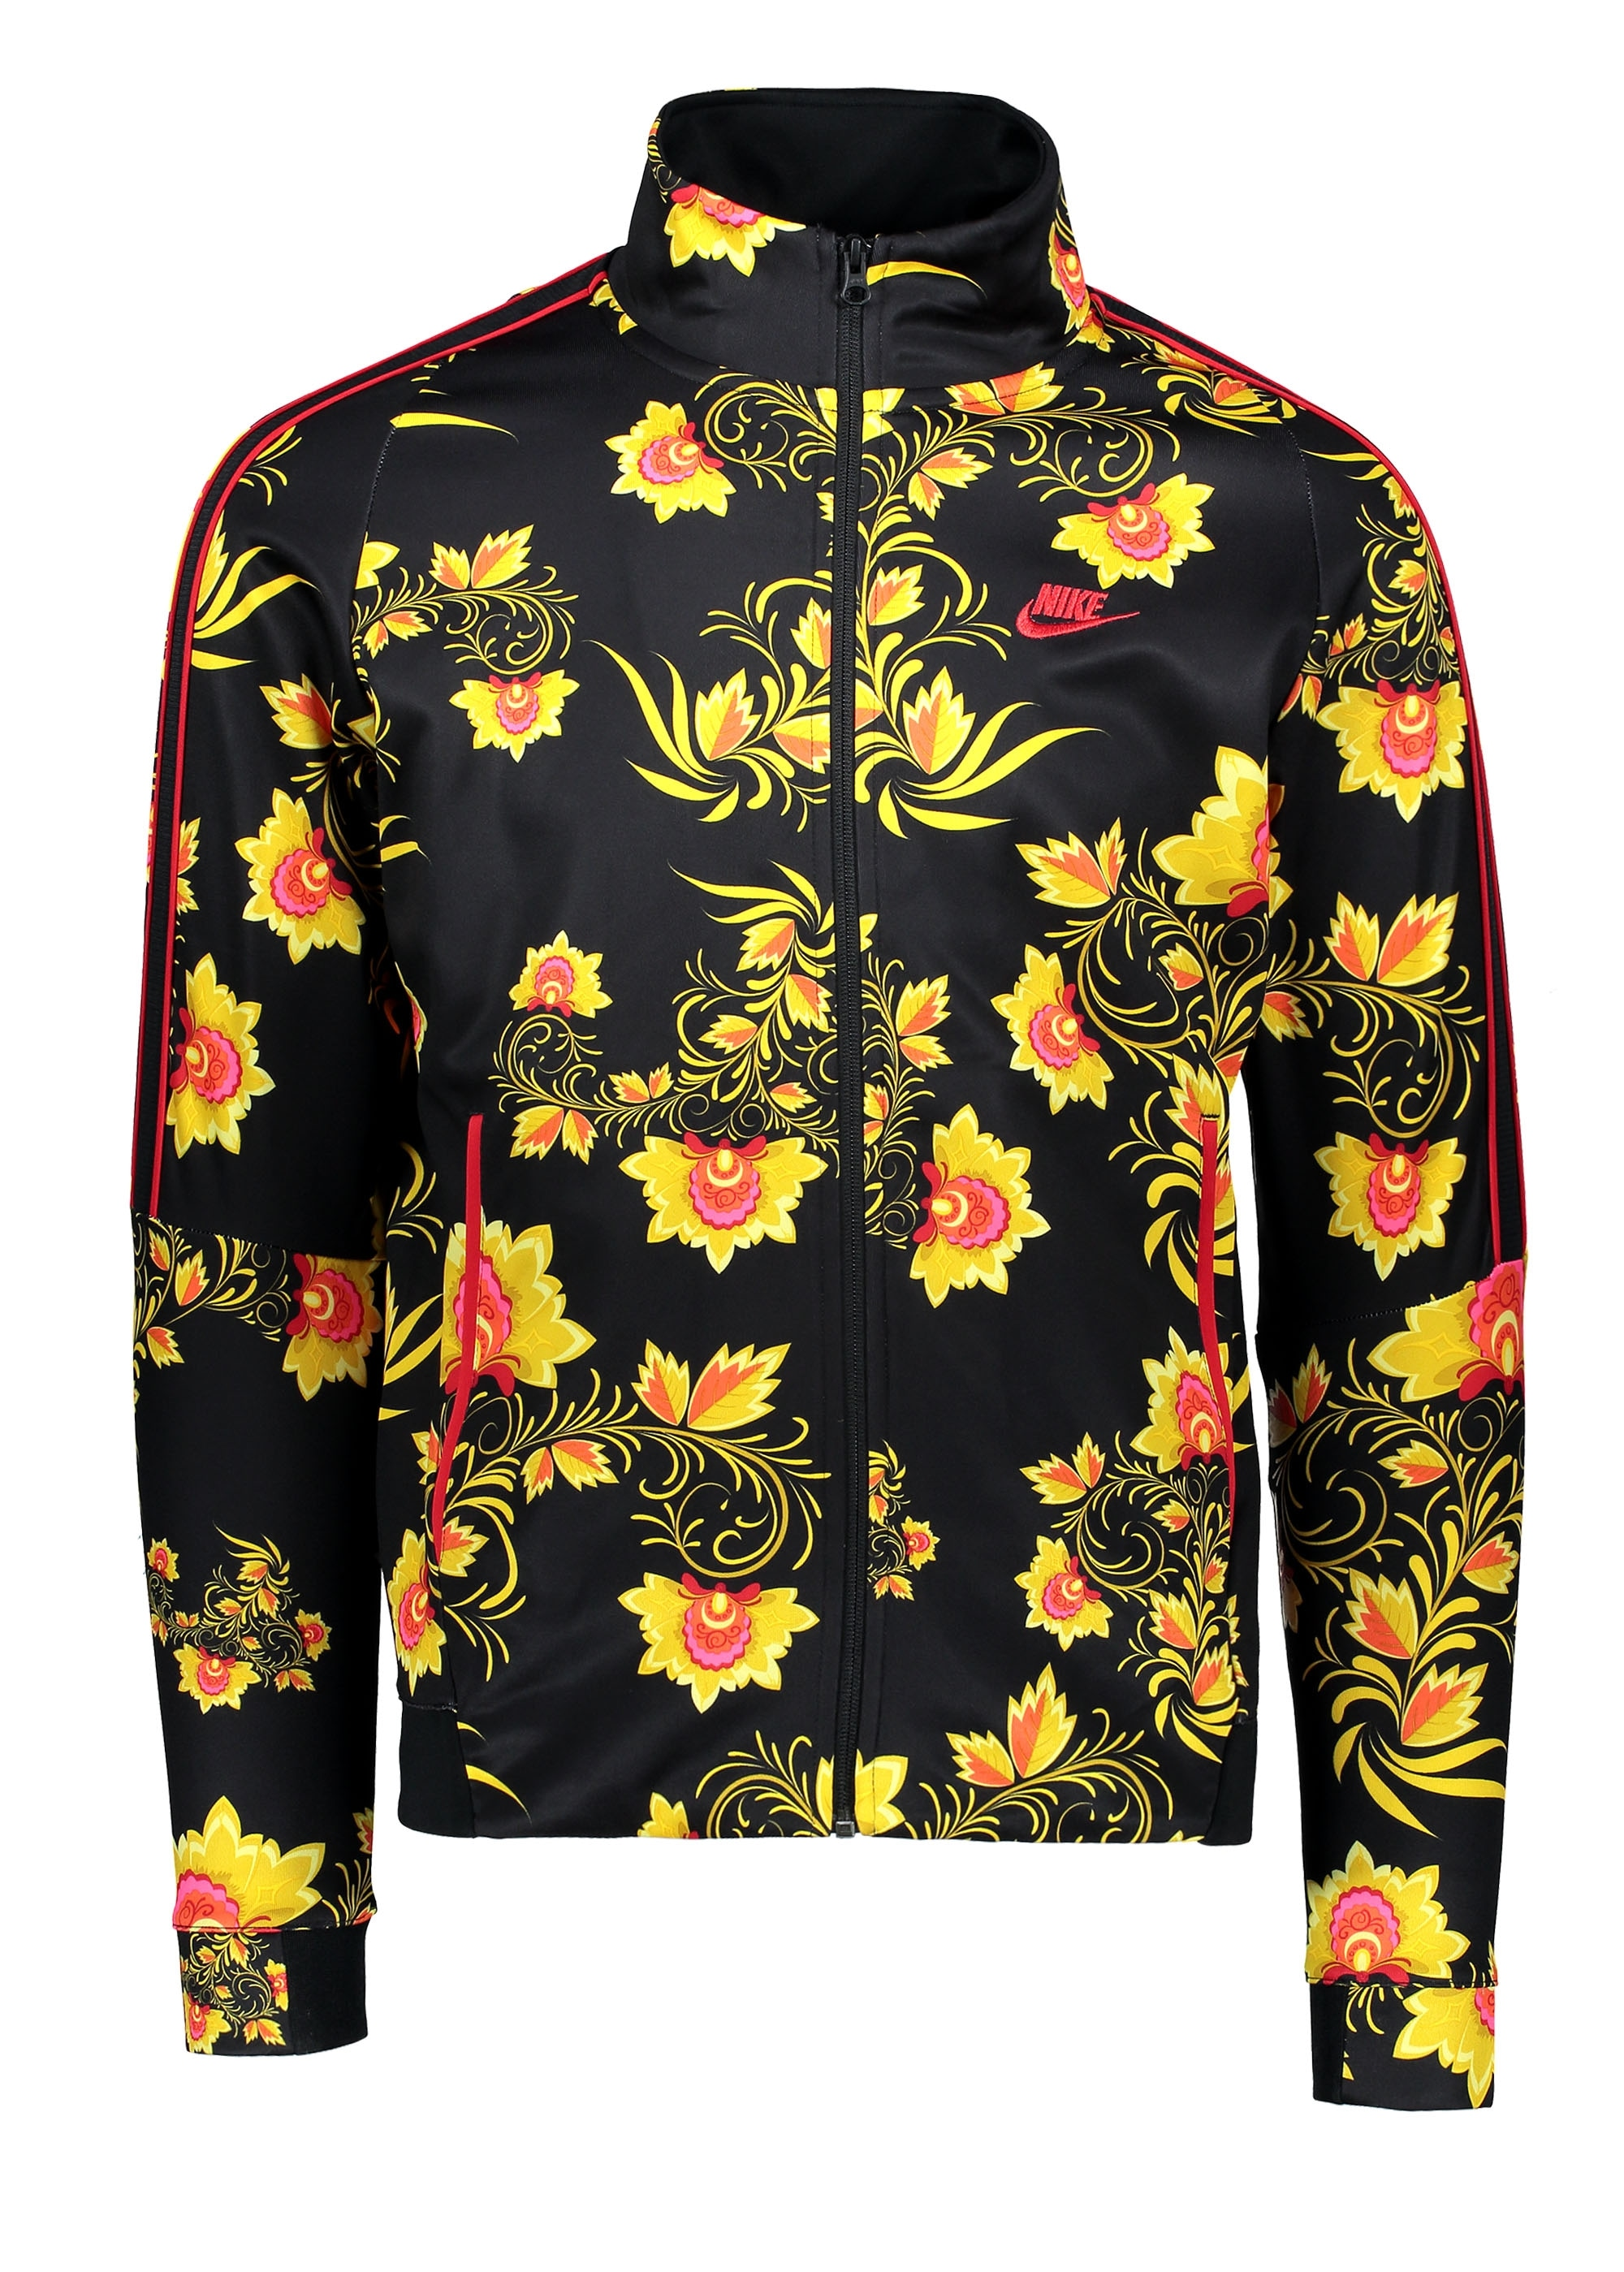 461a2468 Nike Apparel N98 Jacket - Black / Yellow - Track Tops from Triads UK